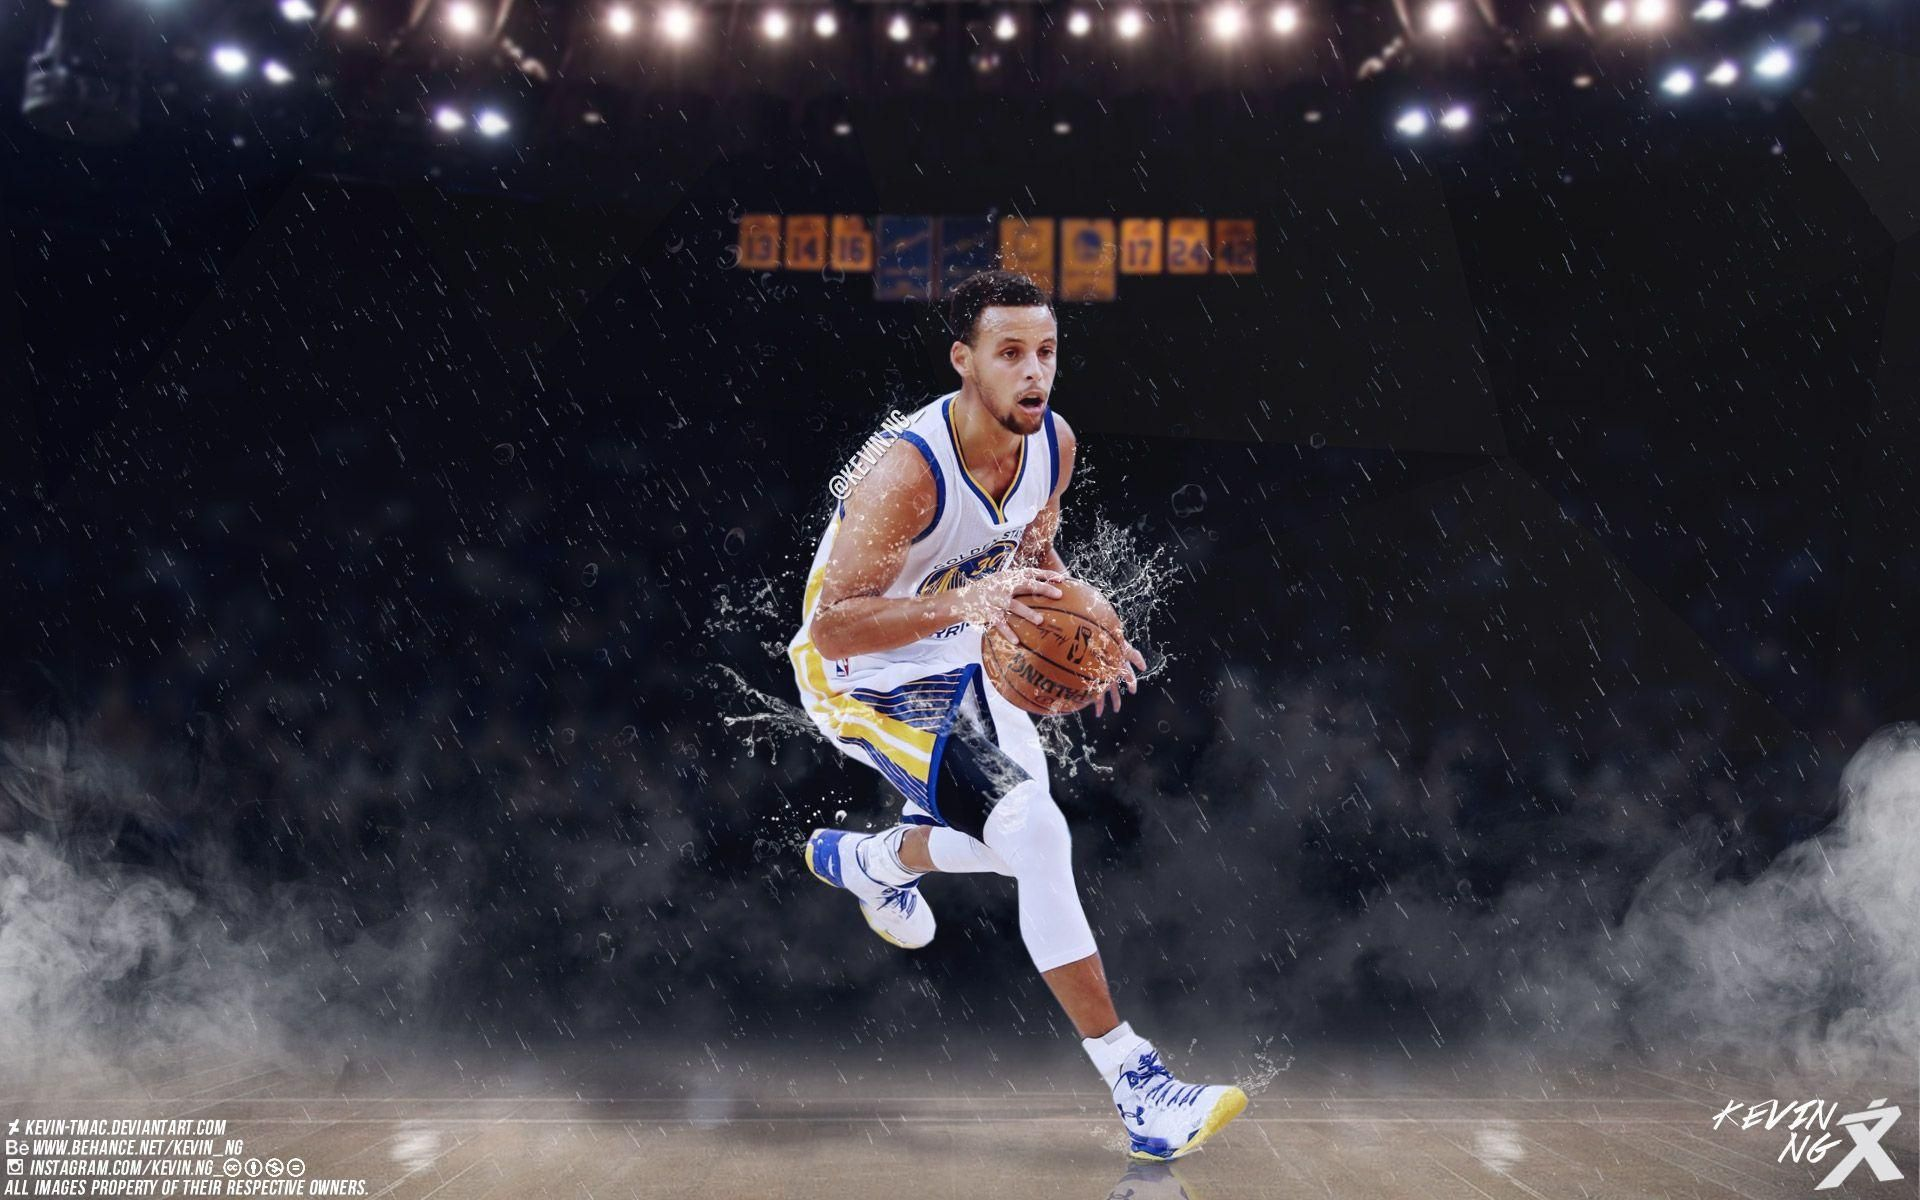 1920x1200 Stephen curry wallpapers Gallery